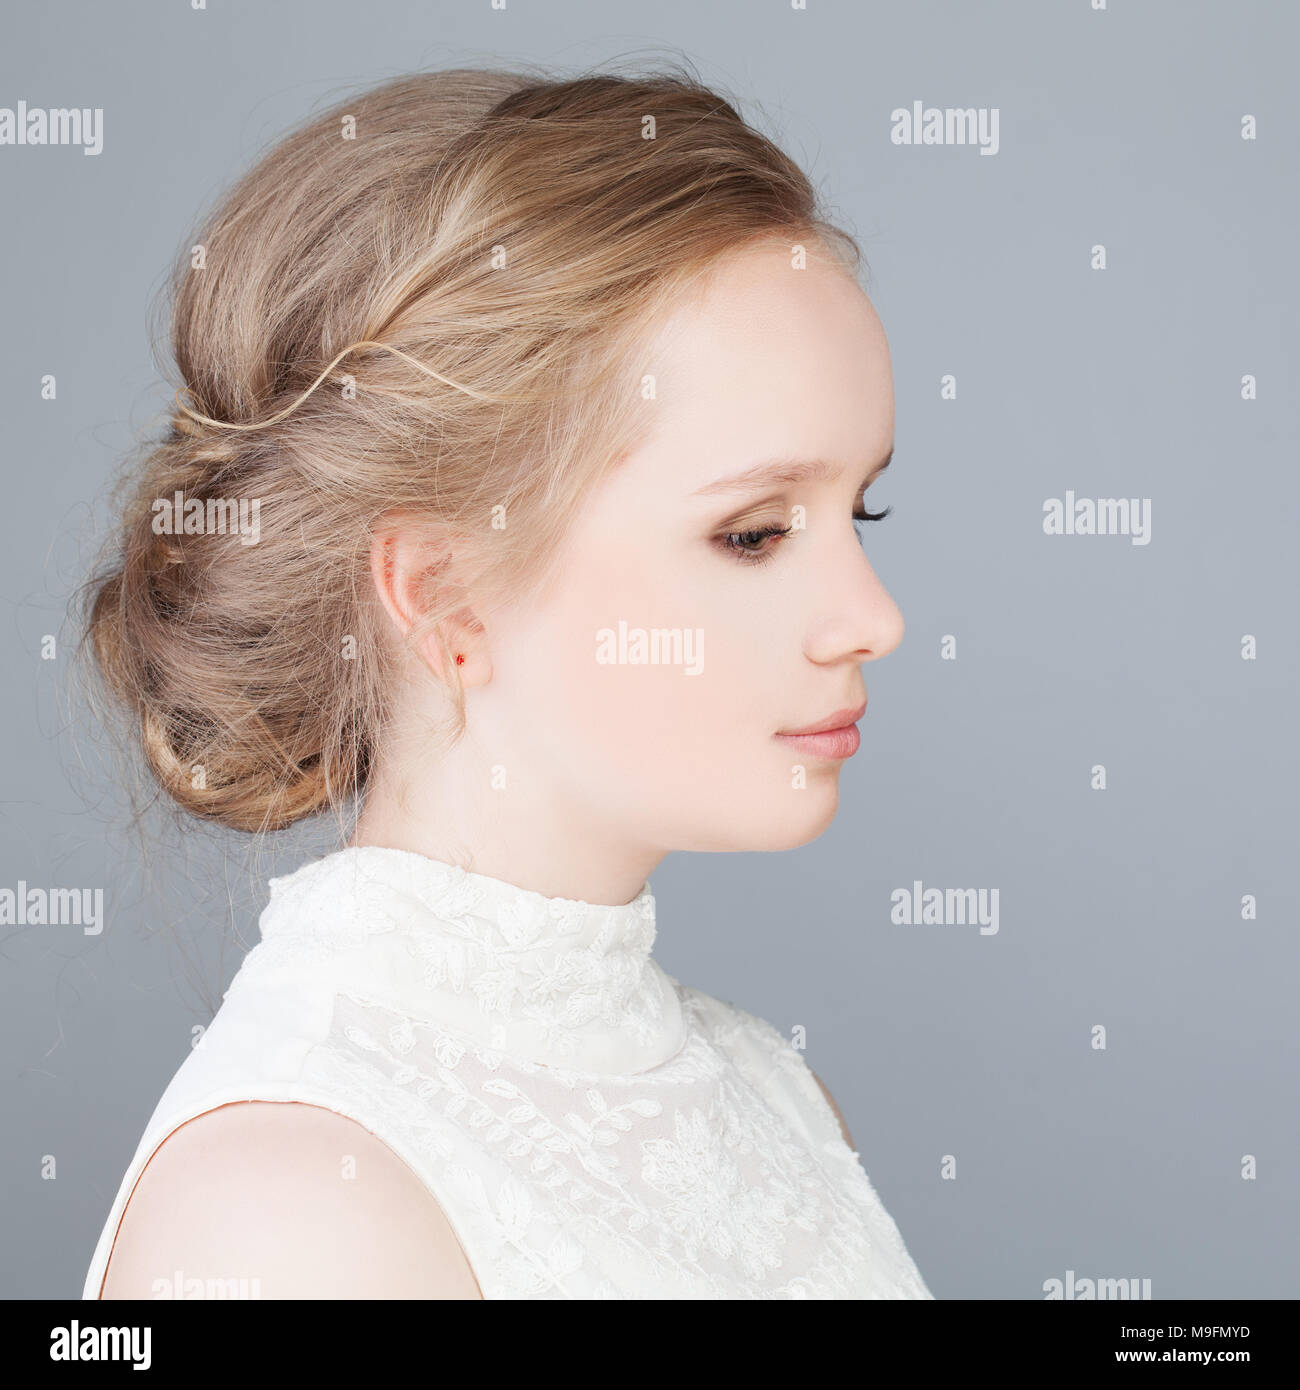 Cute Blonde Girl With Prom Hairstyle Profile Stock Photo 177981313